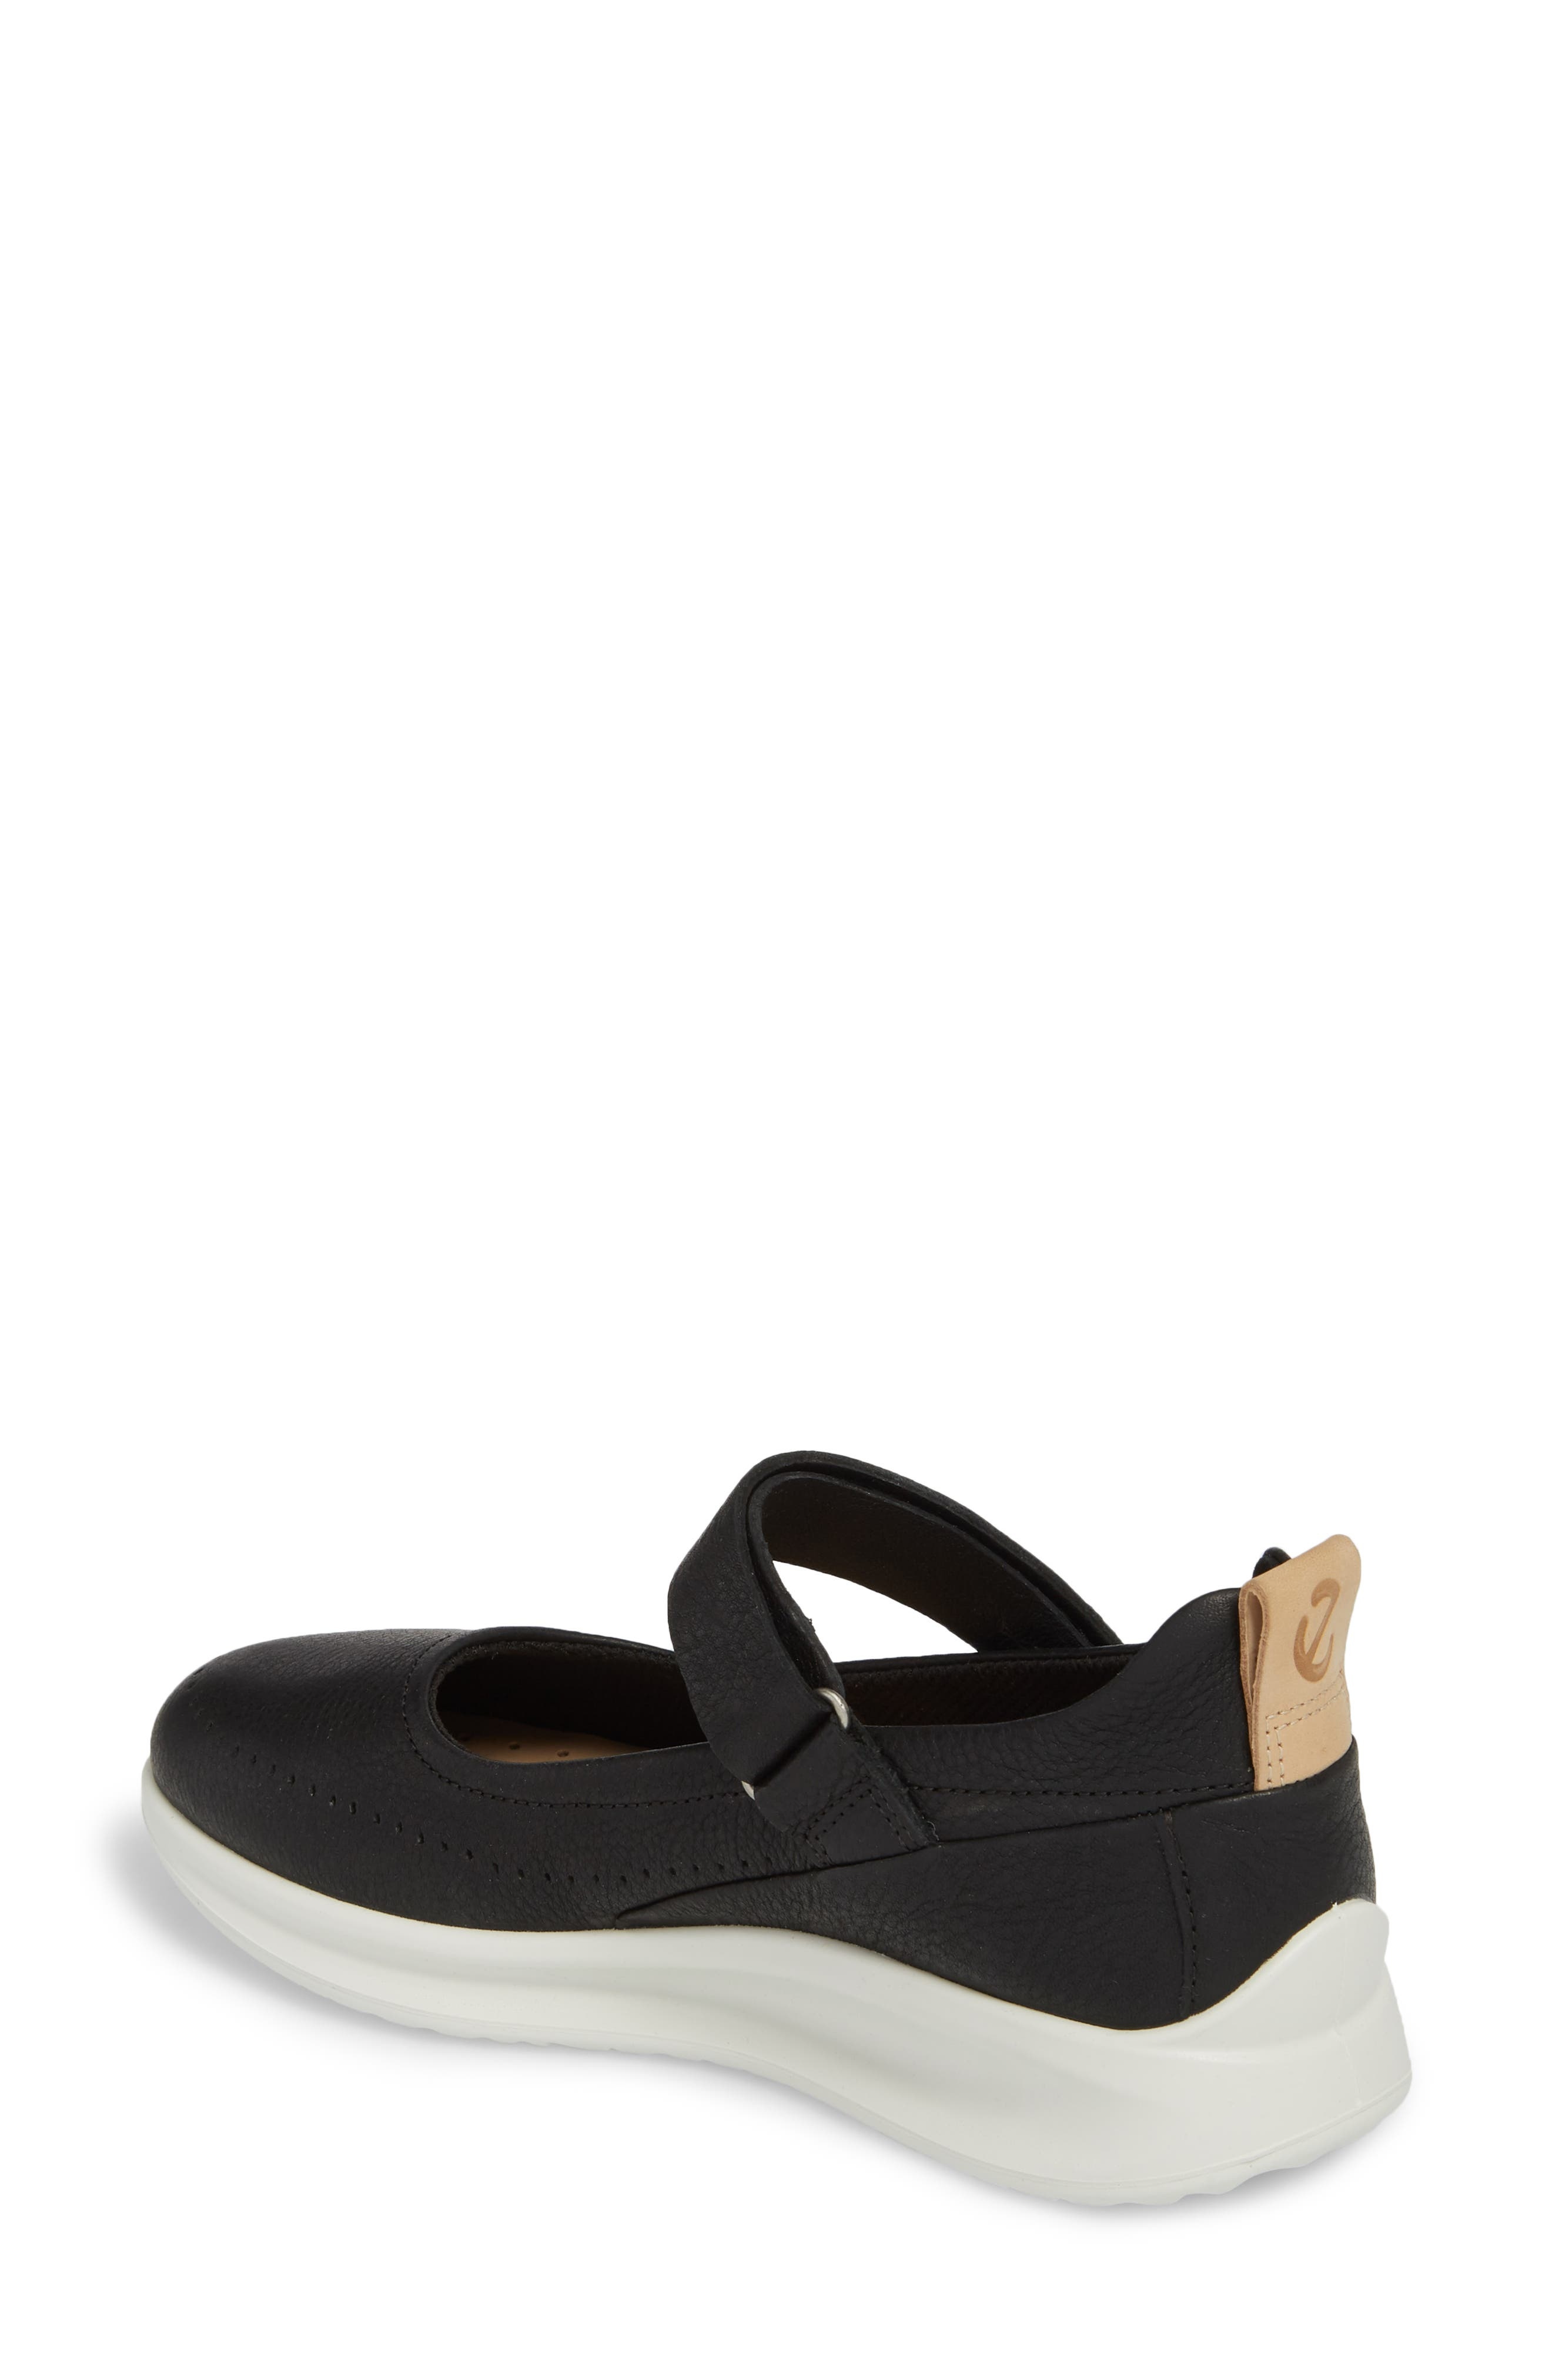 Aquet Mary Jane Wedge Sneaker,                             Alternate thumbnail 2, color,                             Black Leather